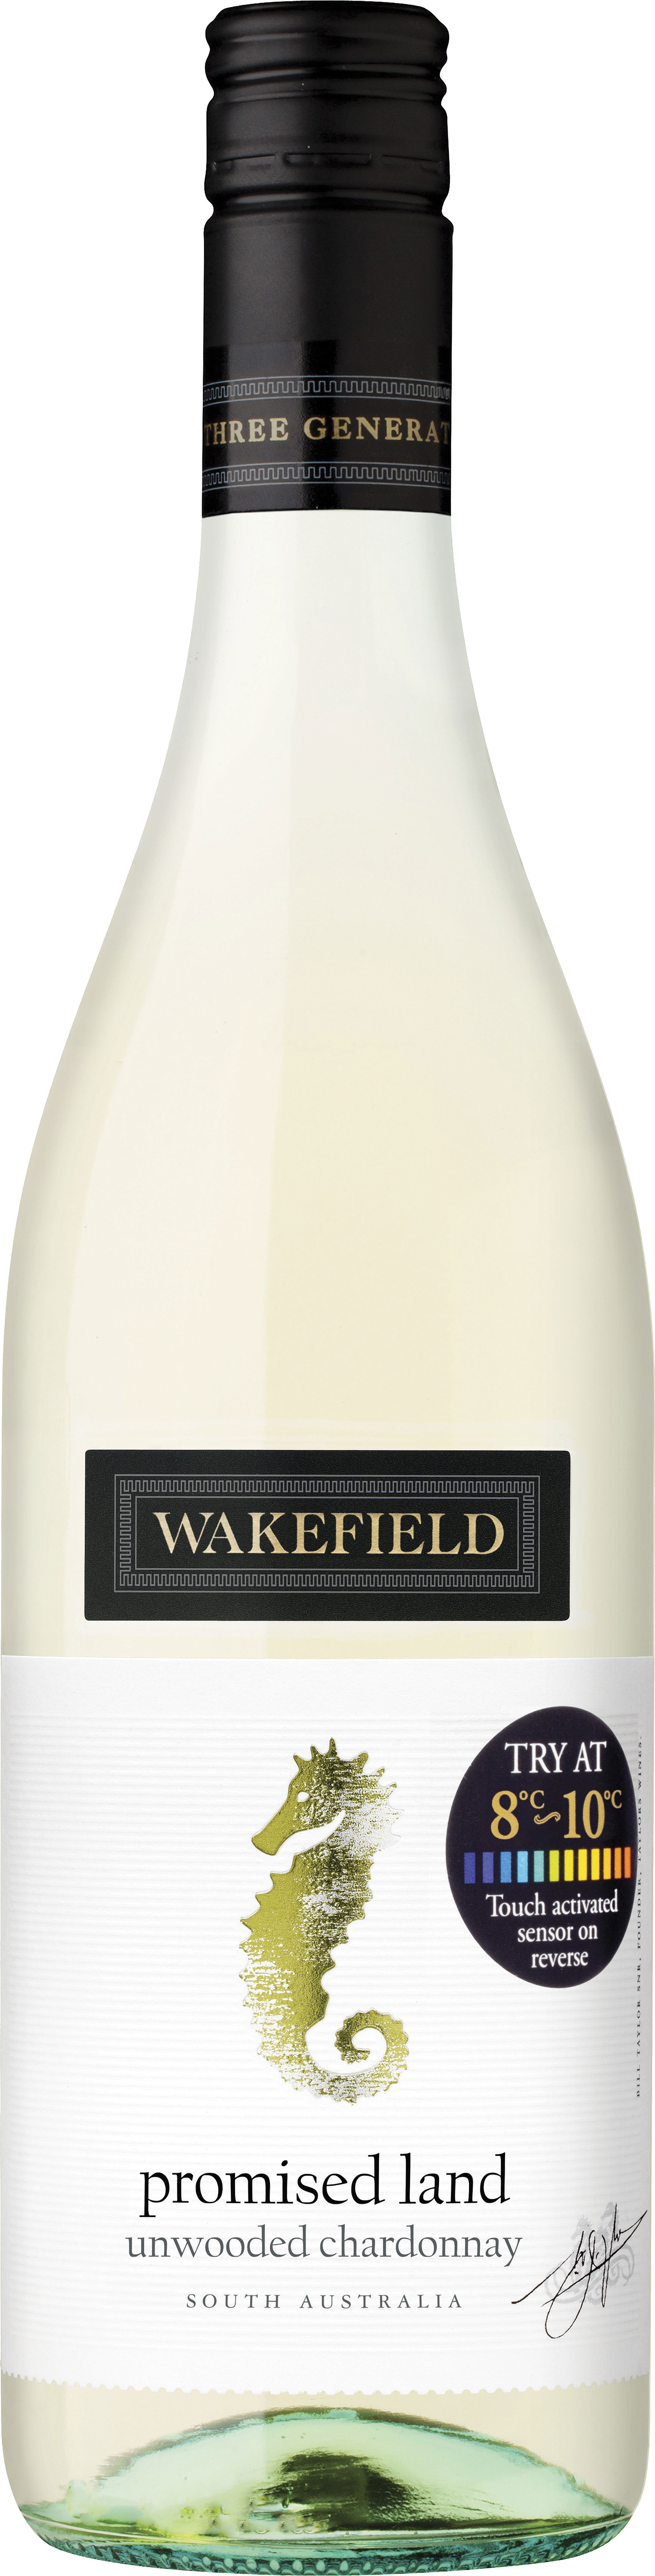 Wakefield Wines - Promised Land Chardonnay 2017 6x 75cl Bottles